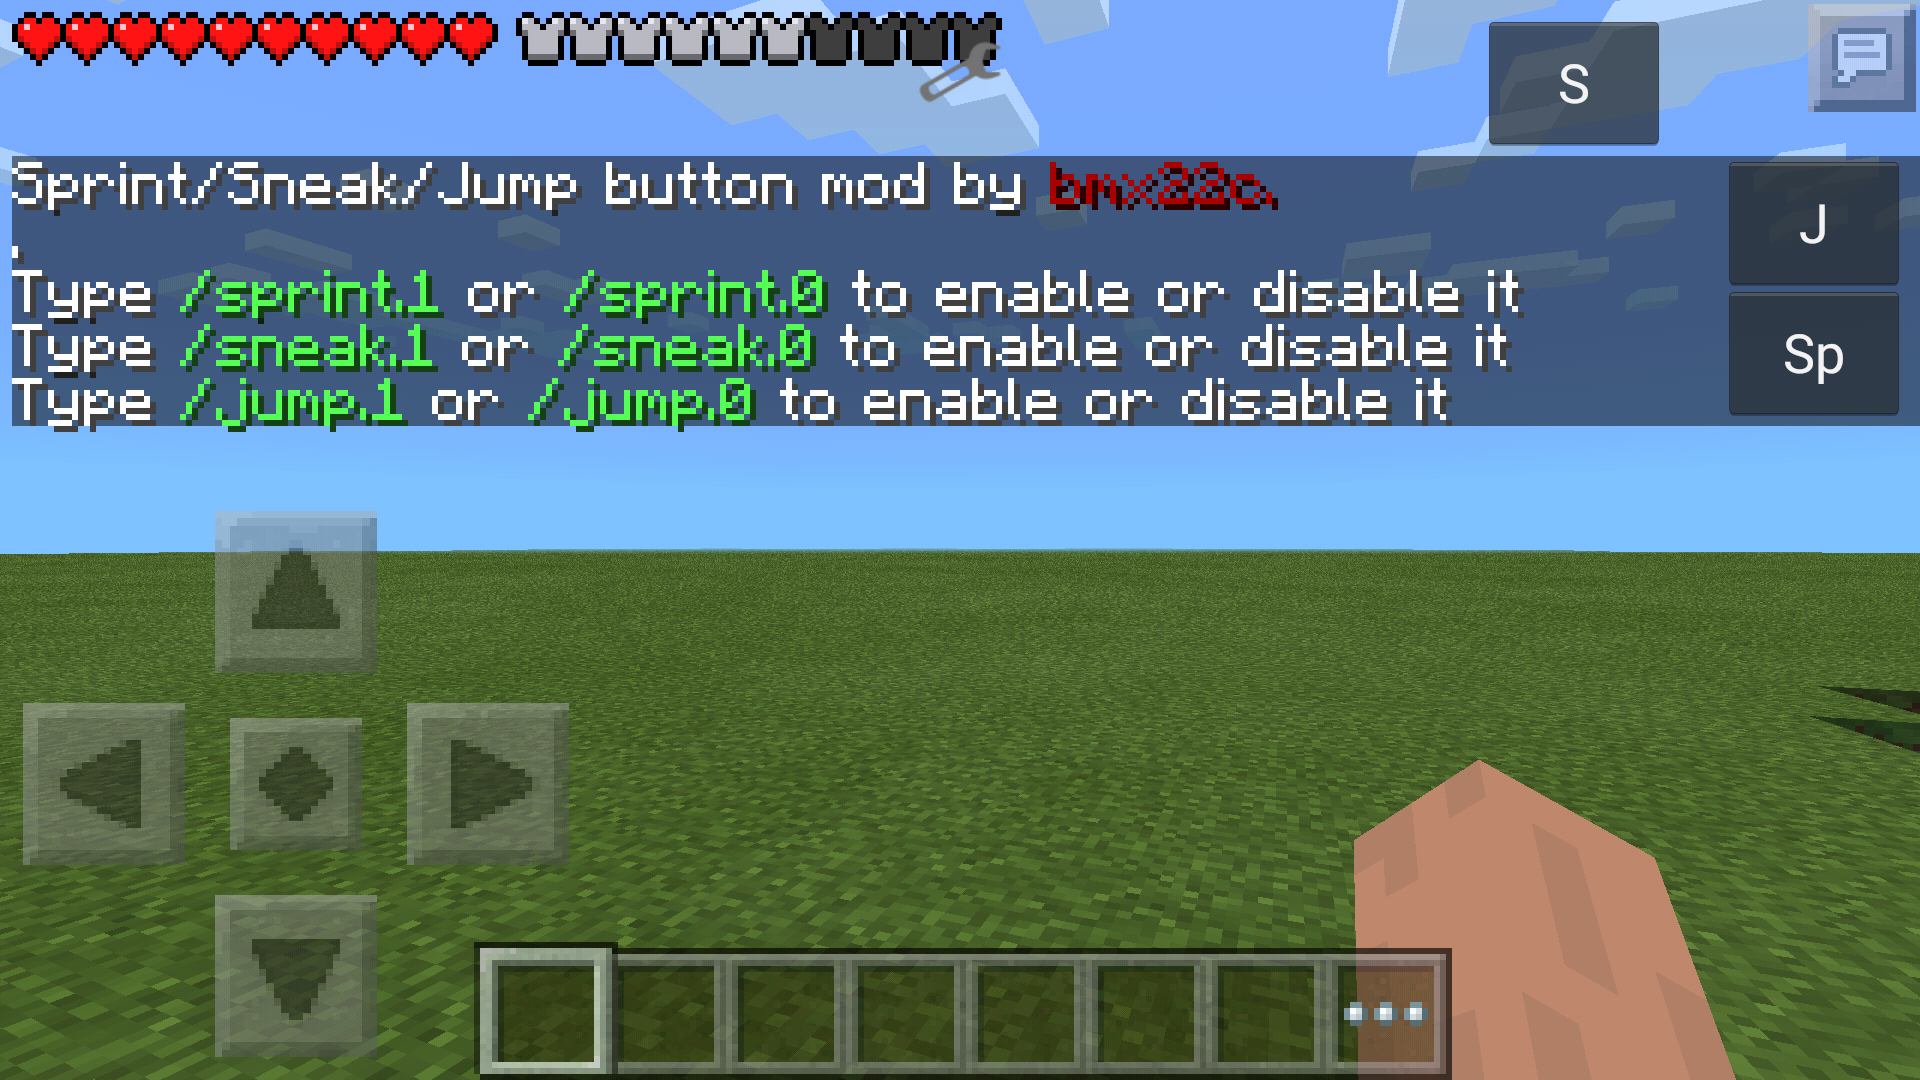 Jump, Sneak, Sprint Buttons Mod